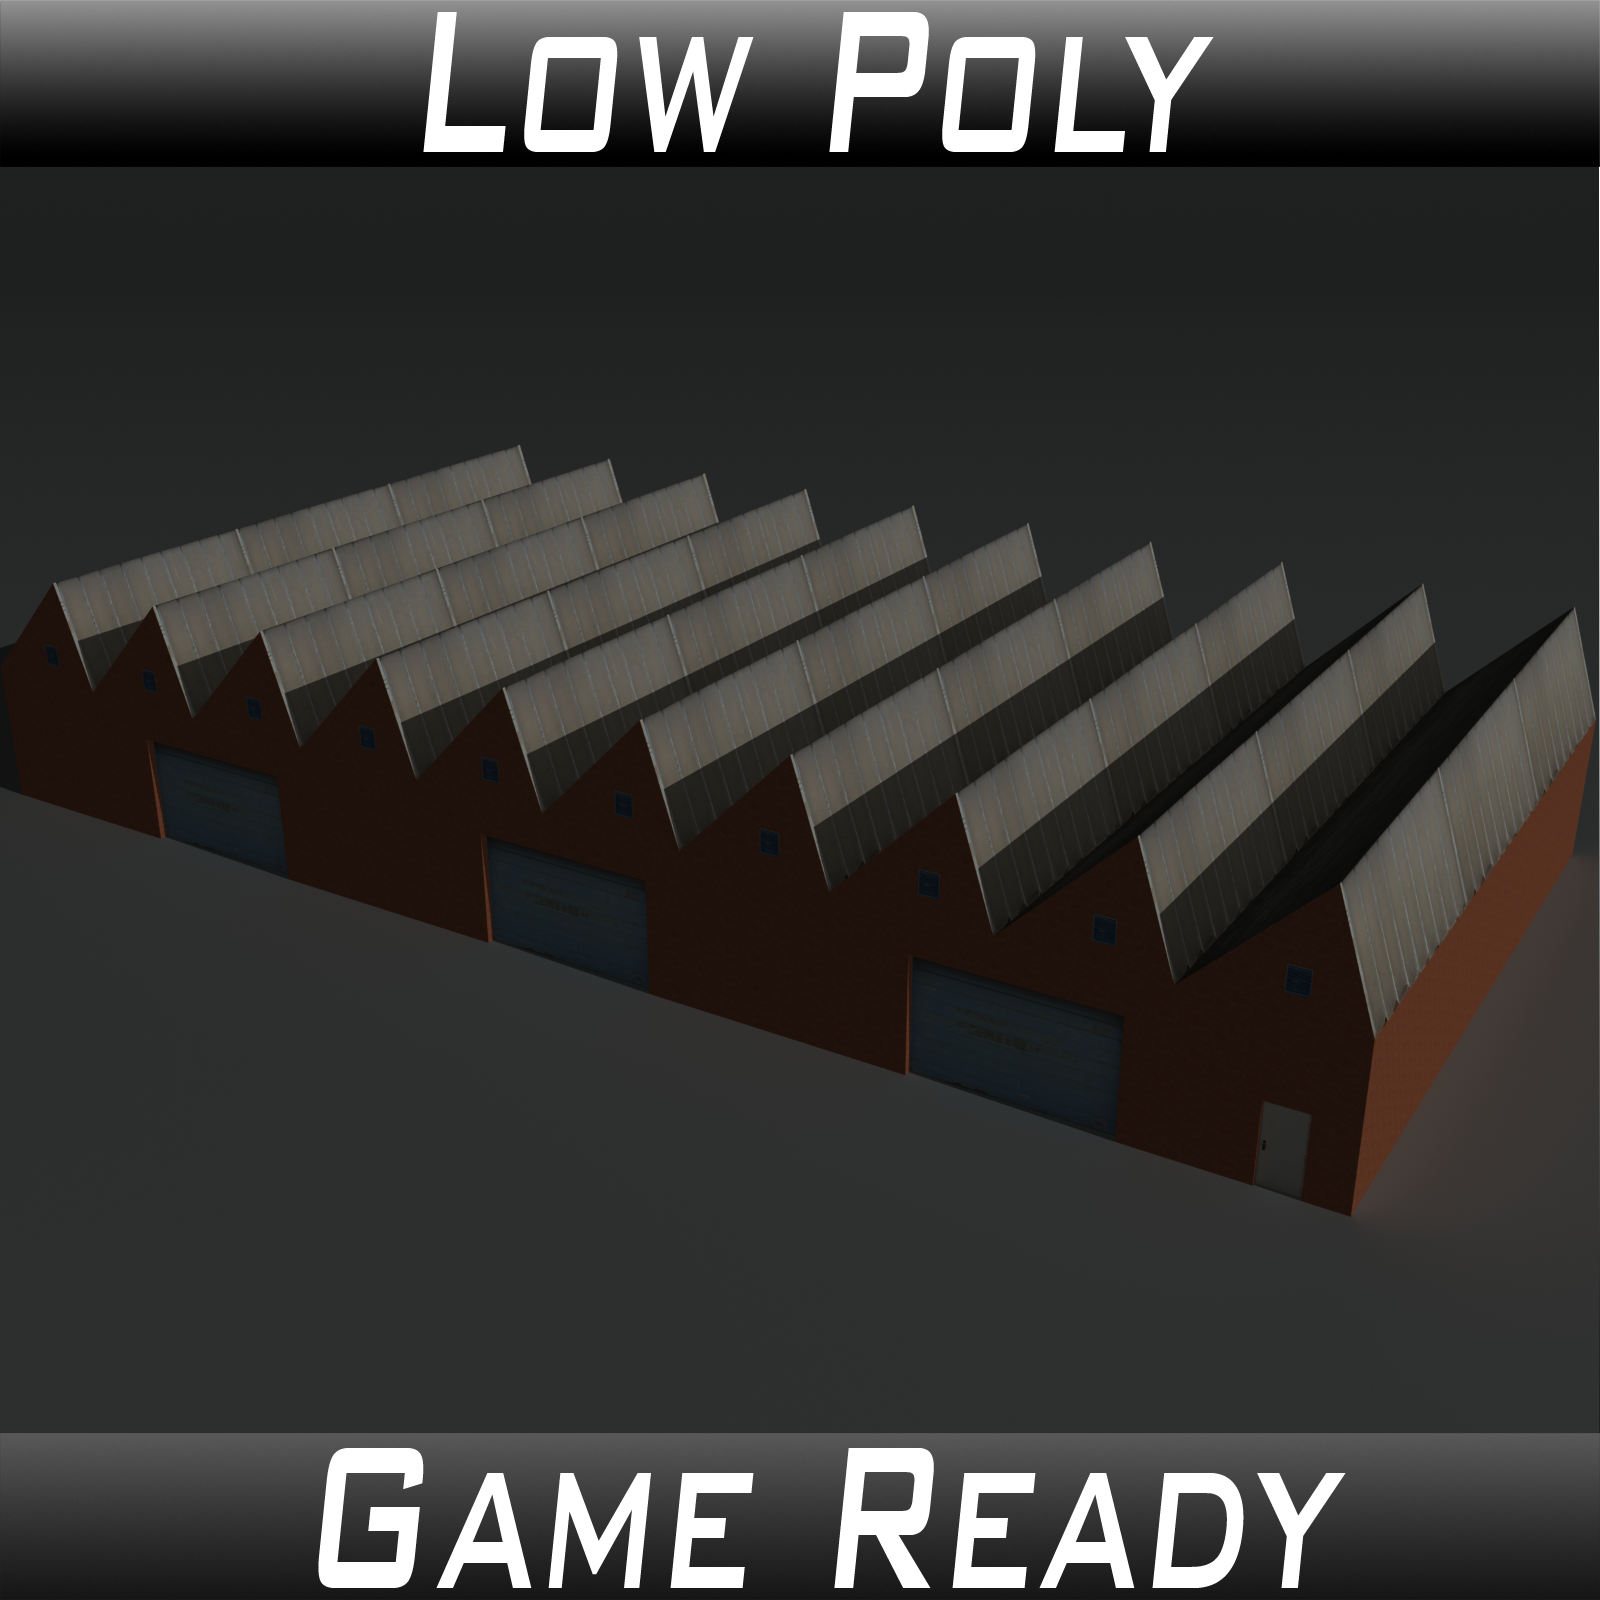 Low Poly Factory Building 2 - Extended Licence by 3dlands